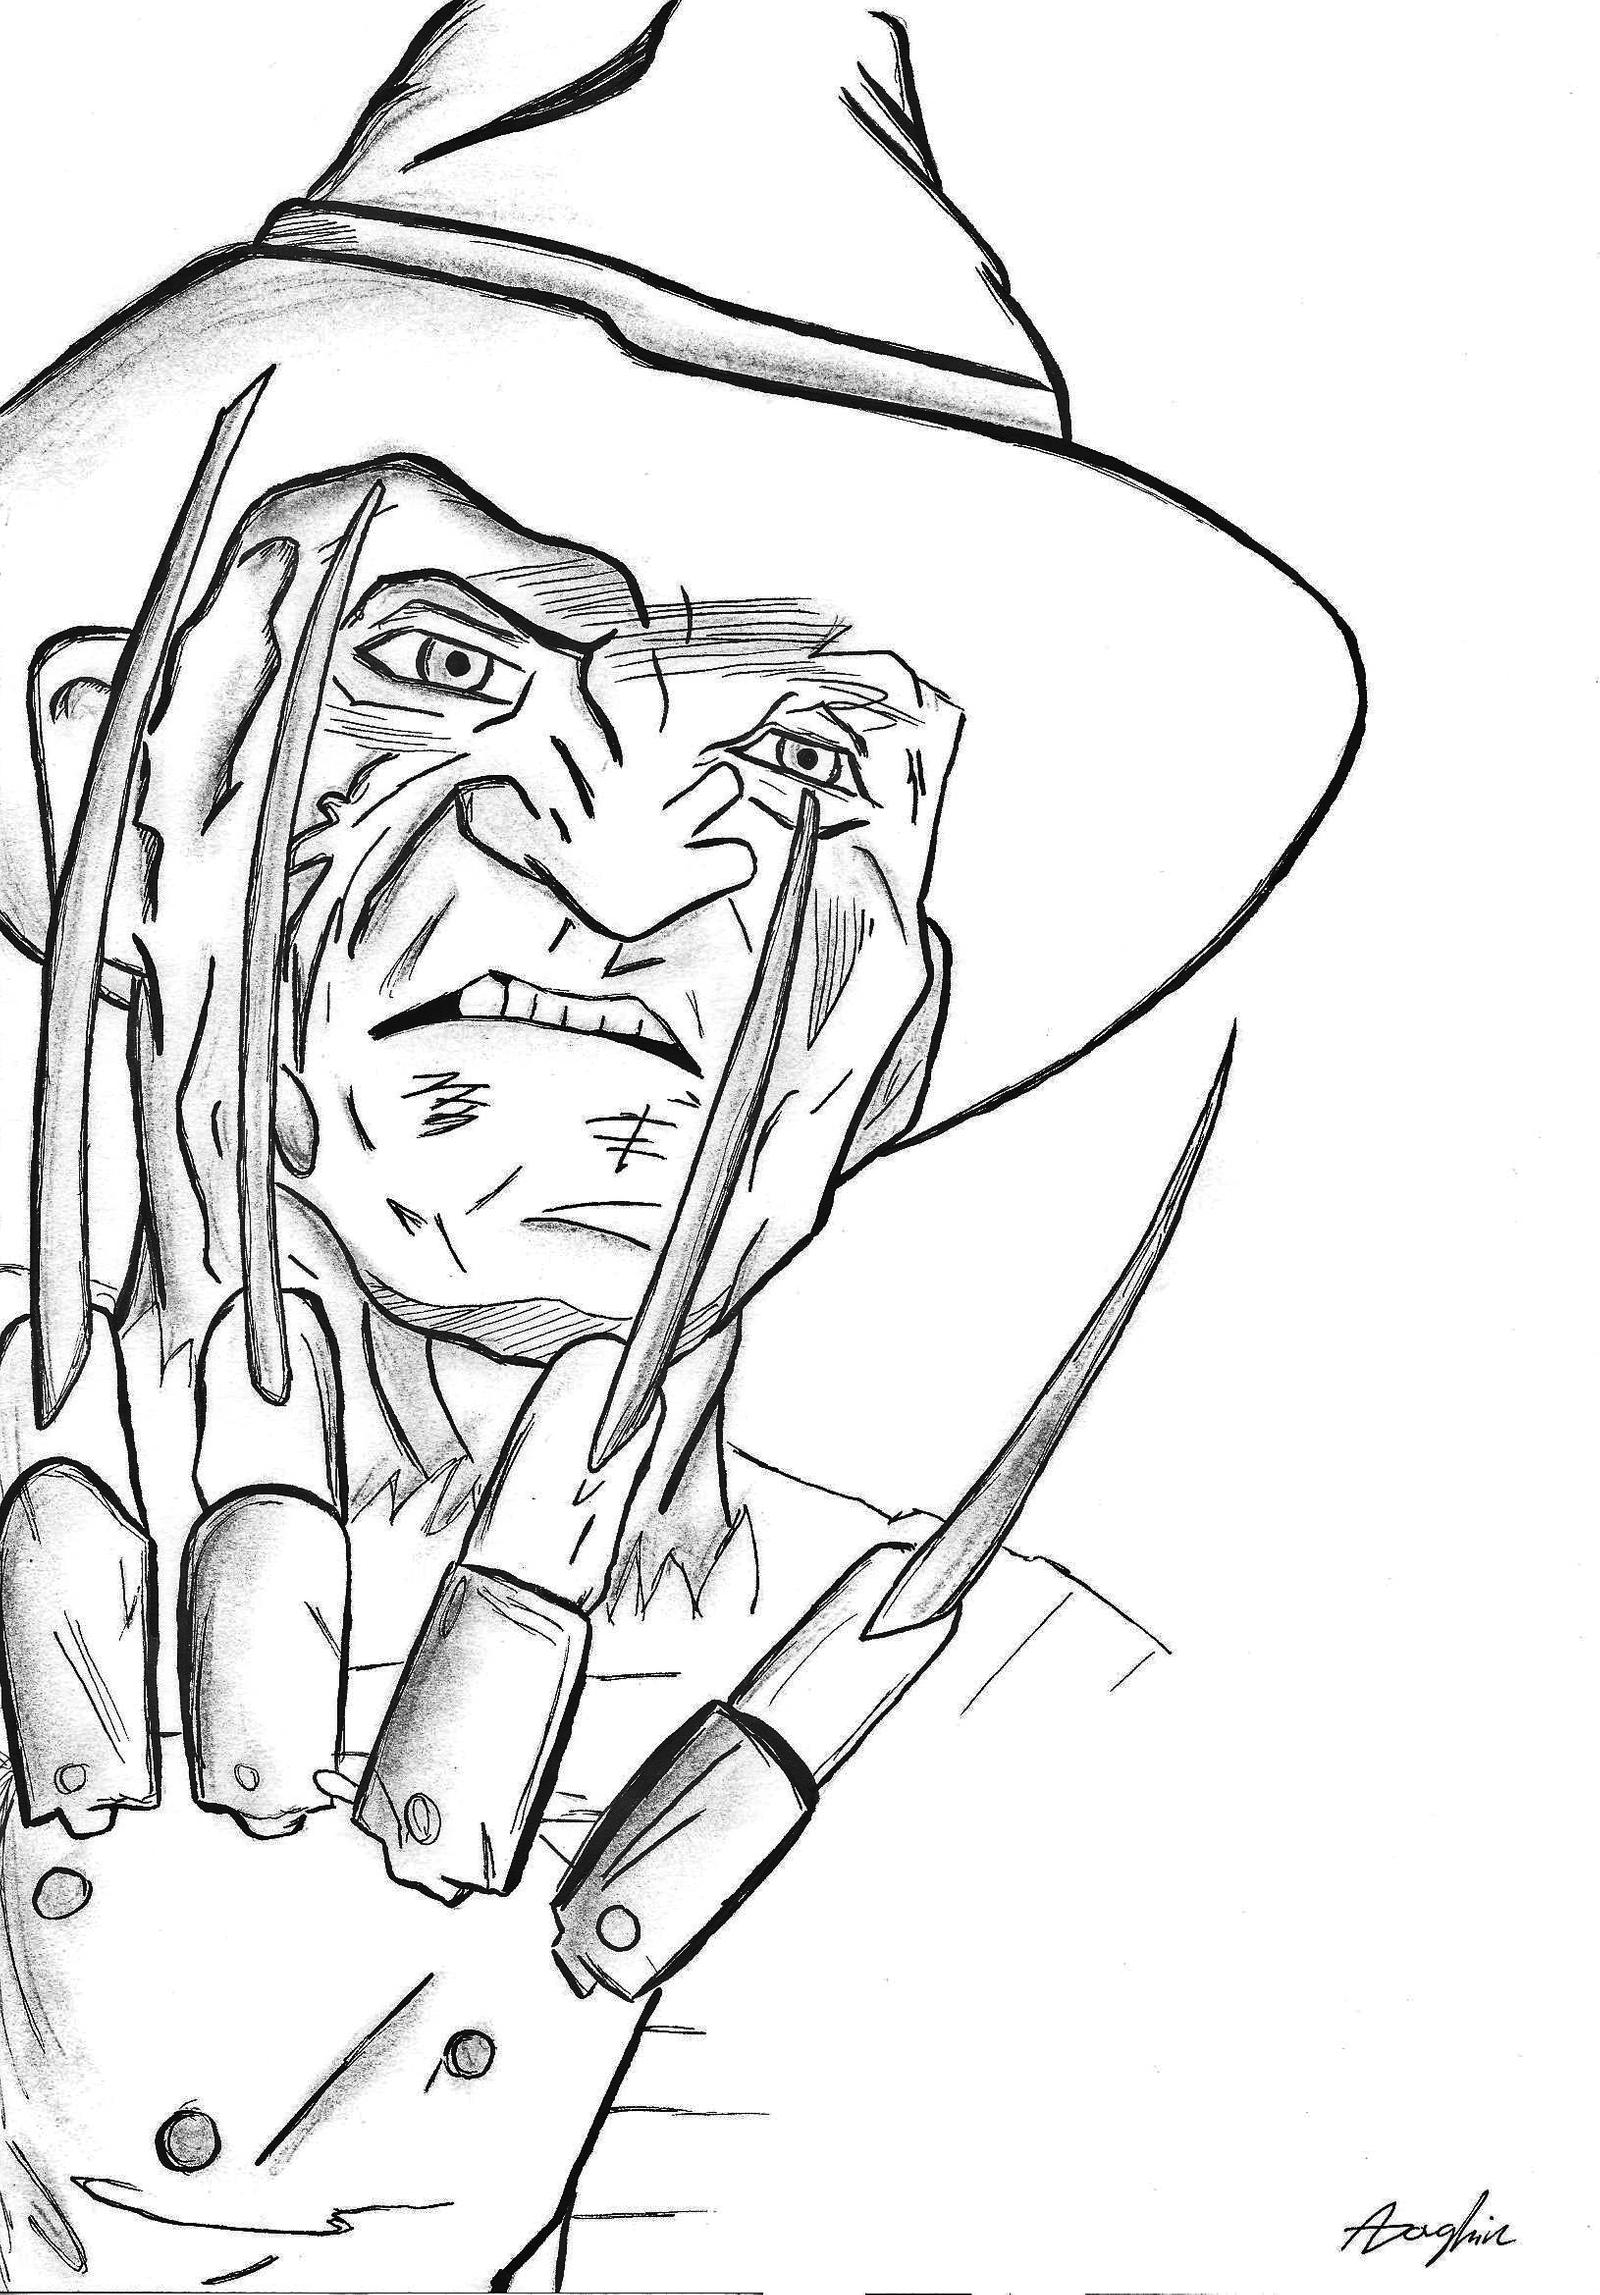 freddy krueger coloring pages freddy krueger by angela joker on deviantart coloring freddy pages krueger